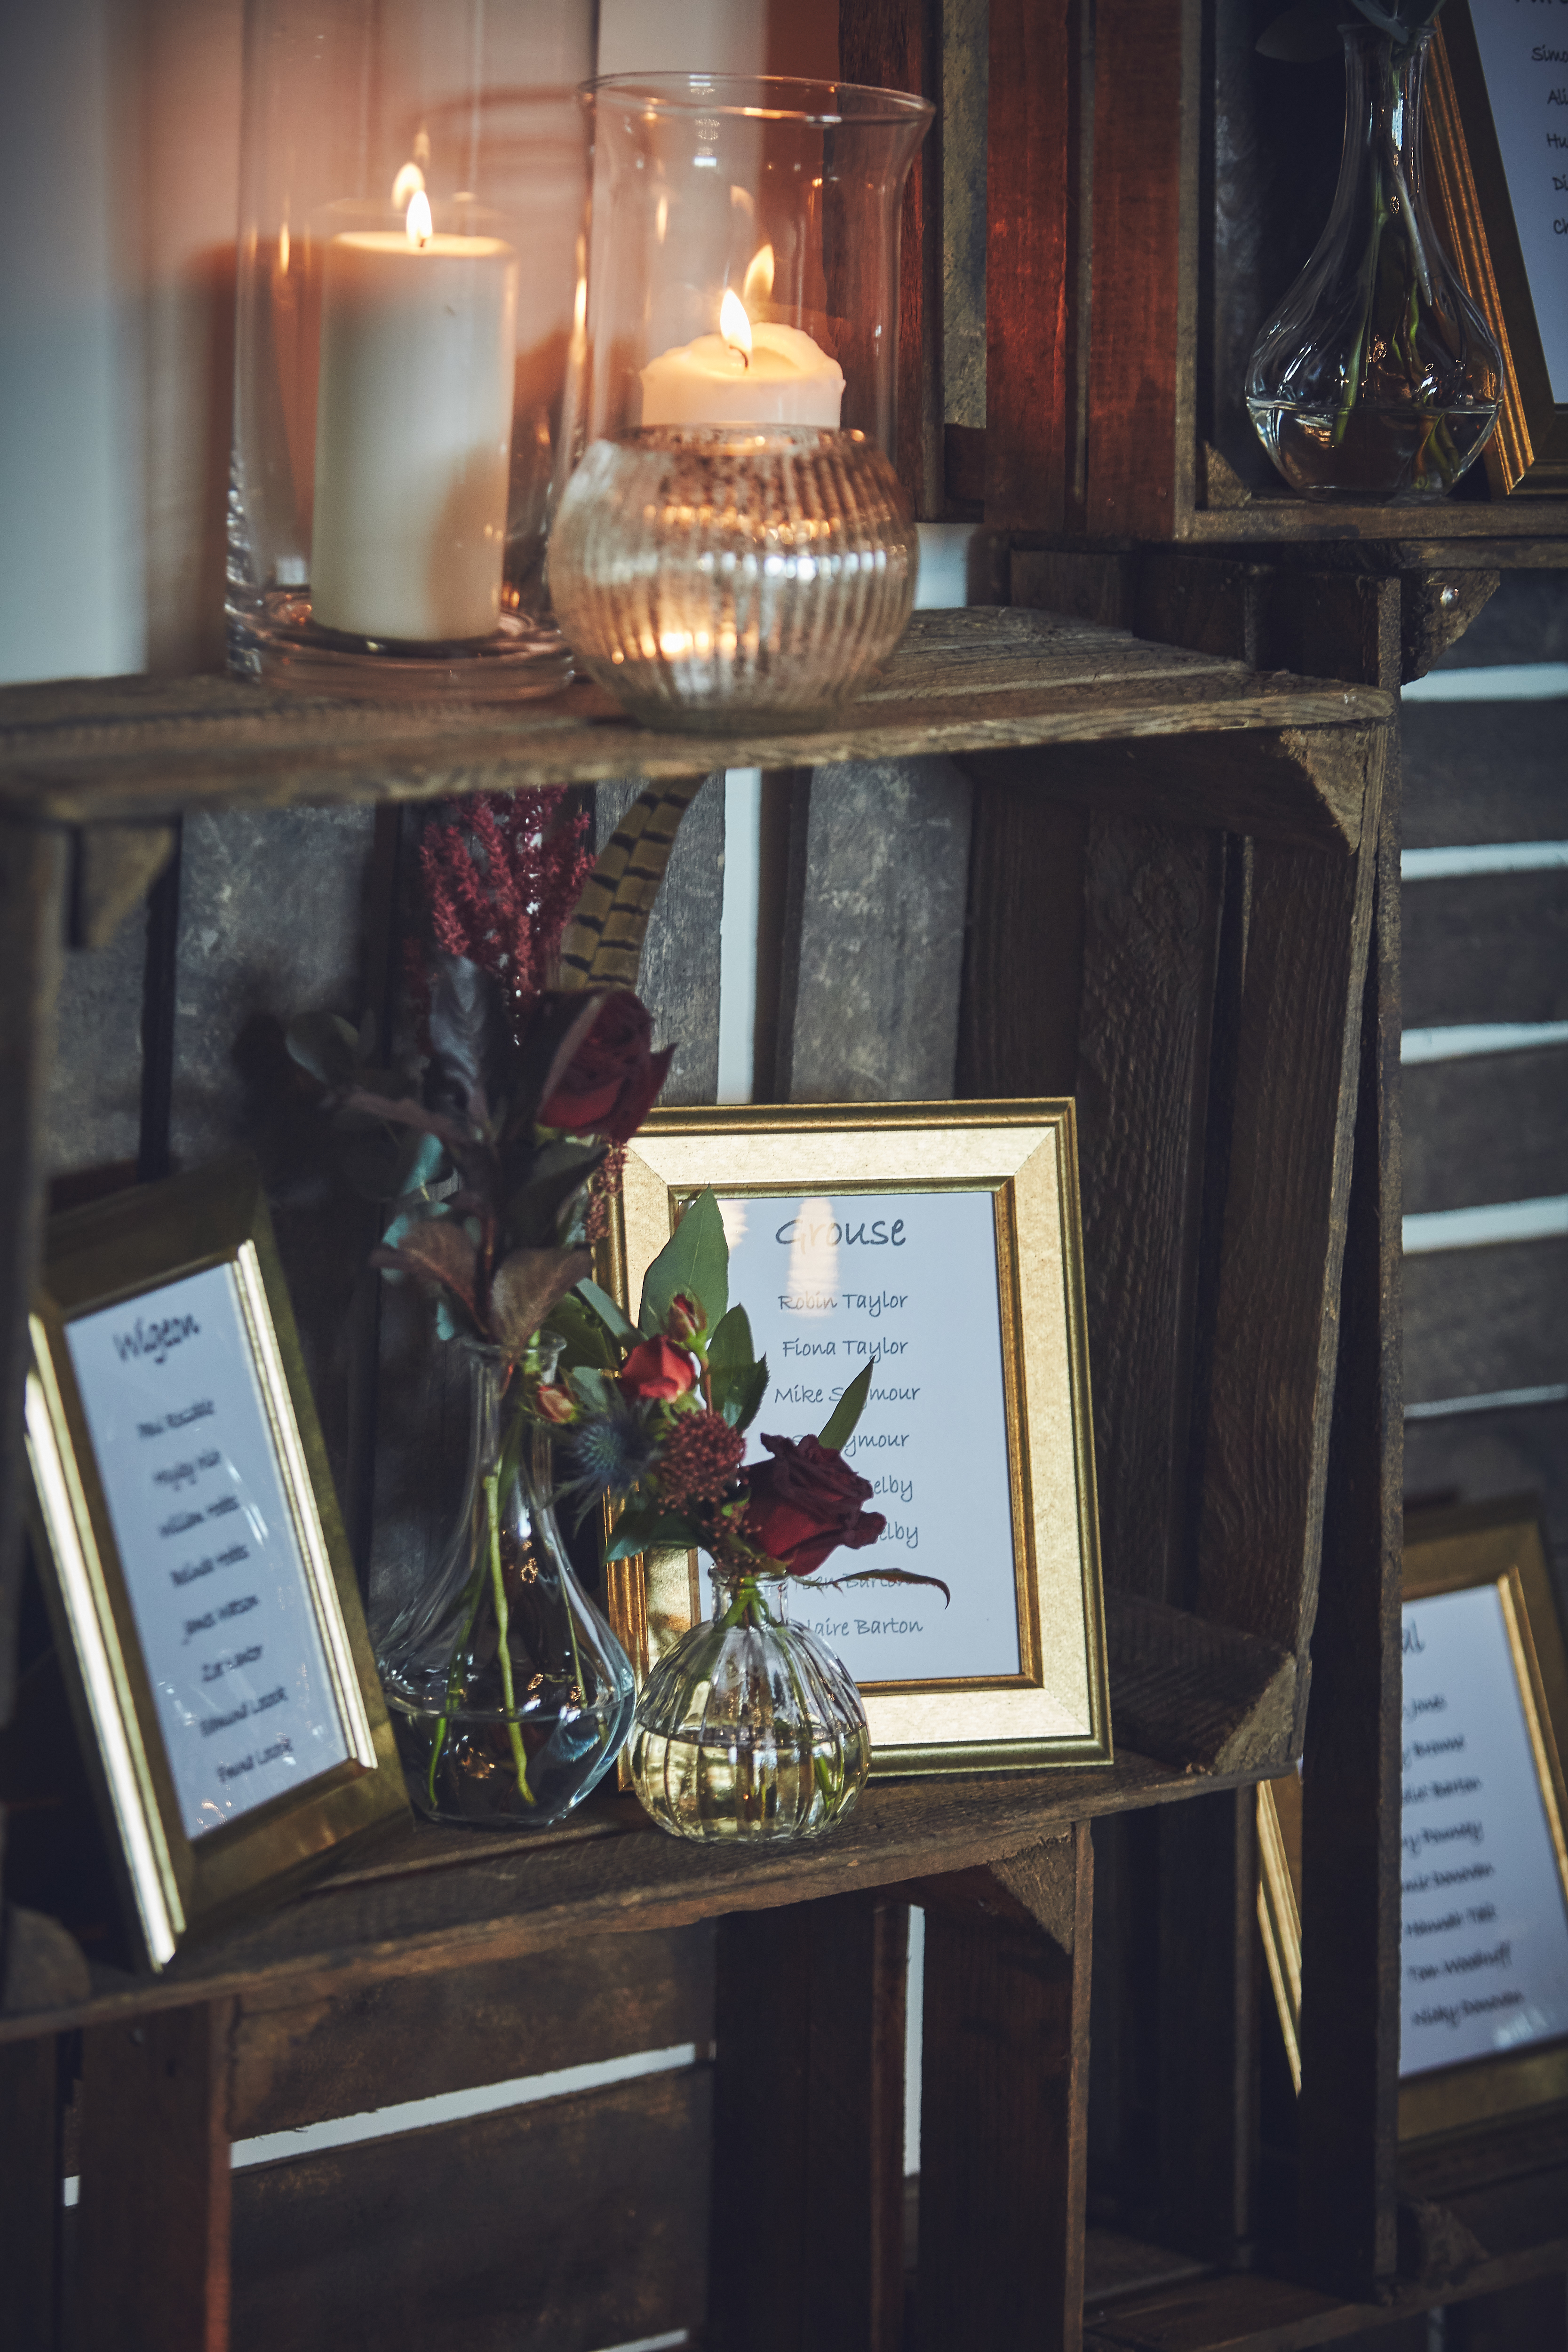 Wedding table plan stacked up in dark crates with seating plan displayed in gold frames